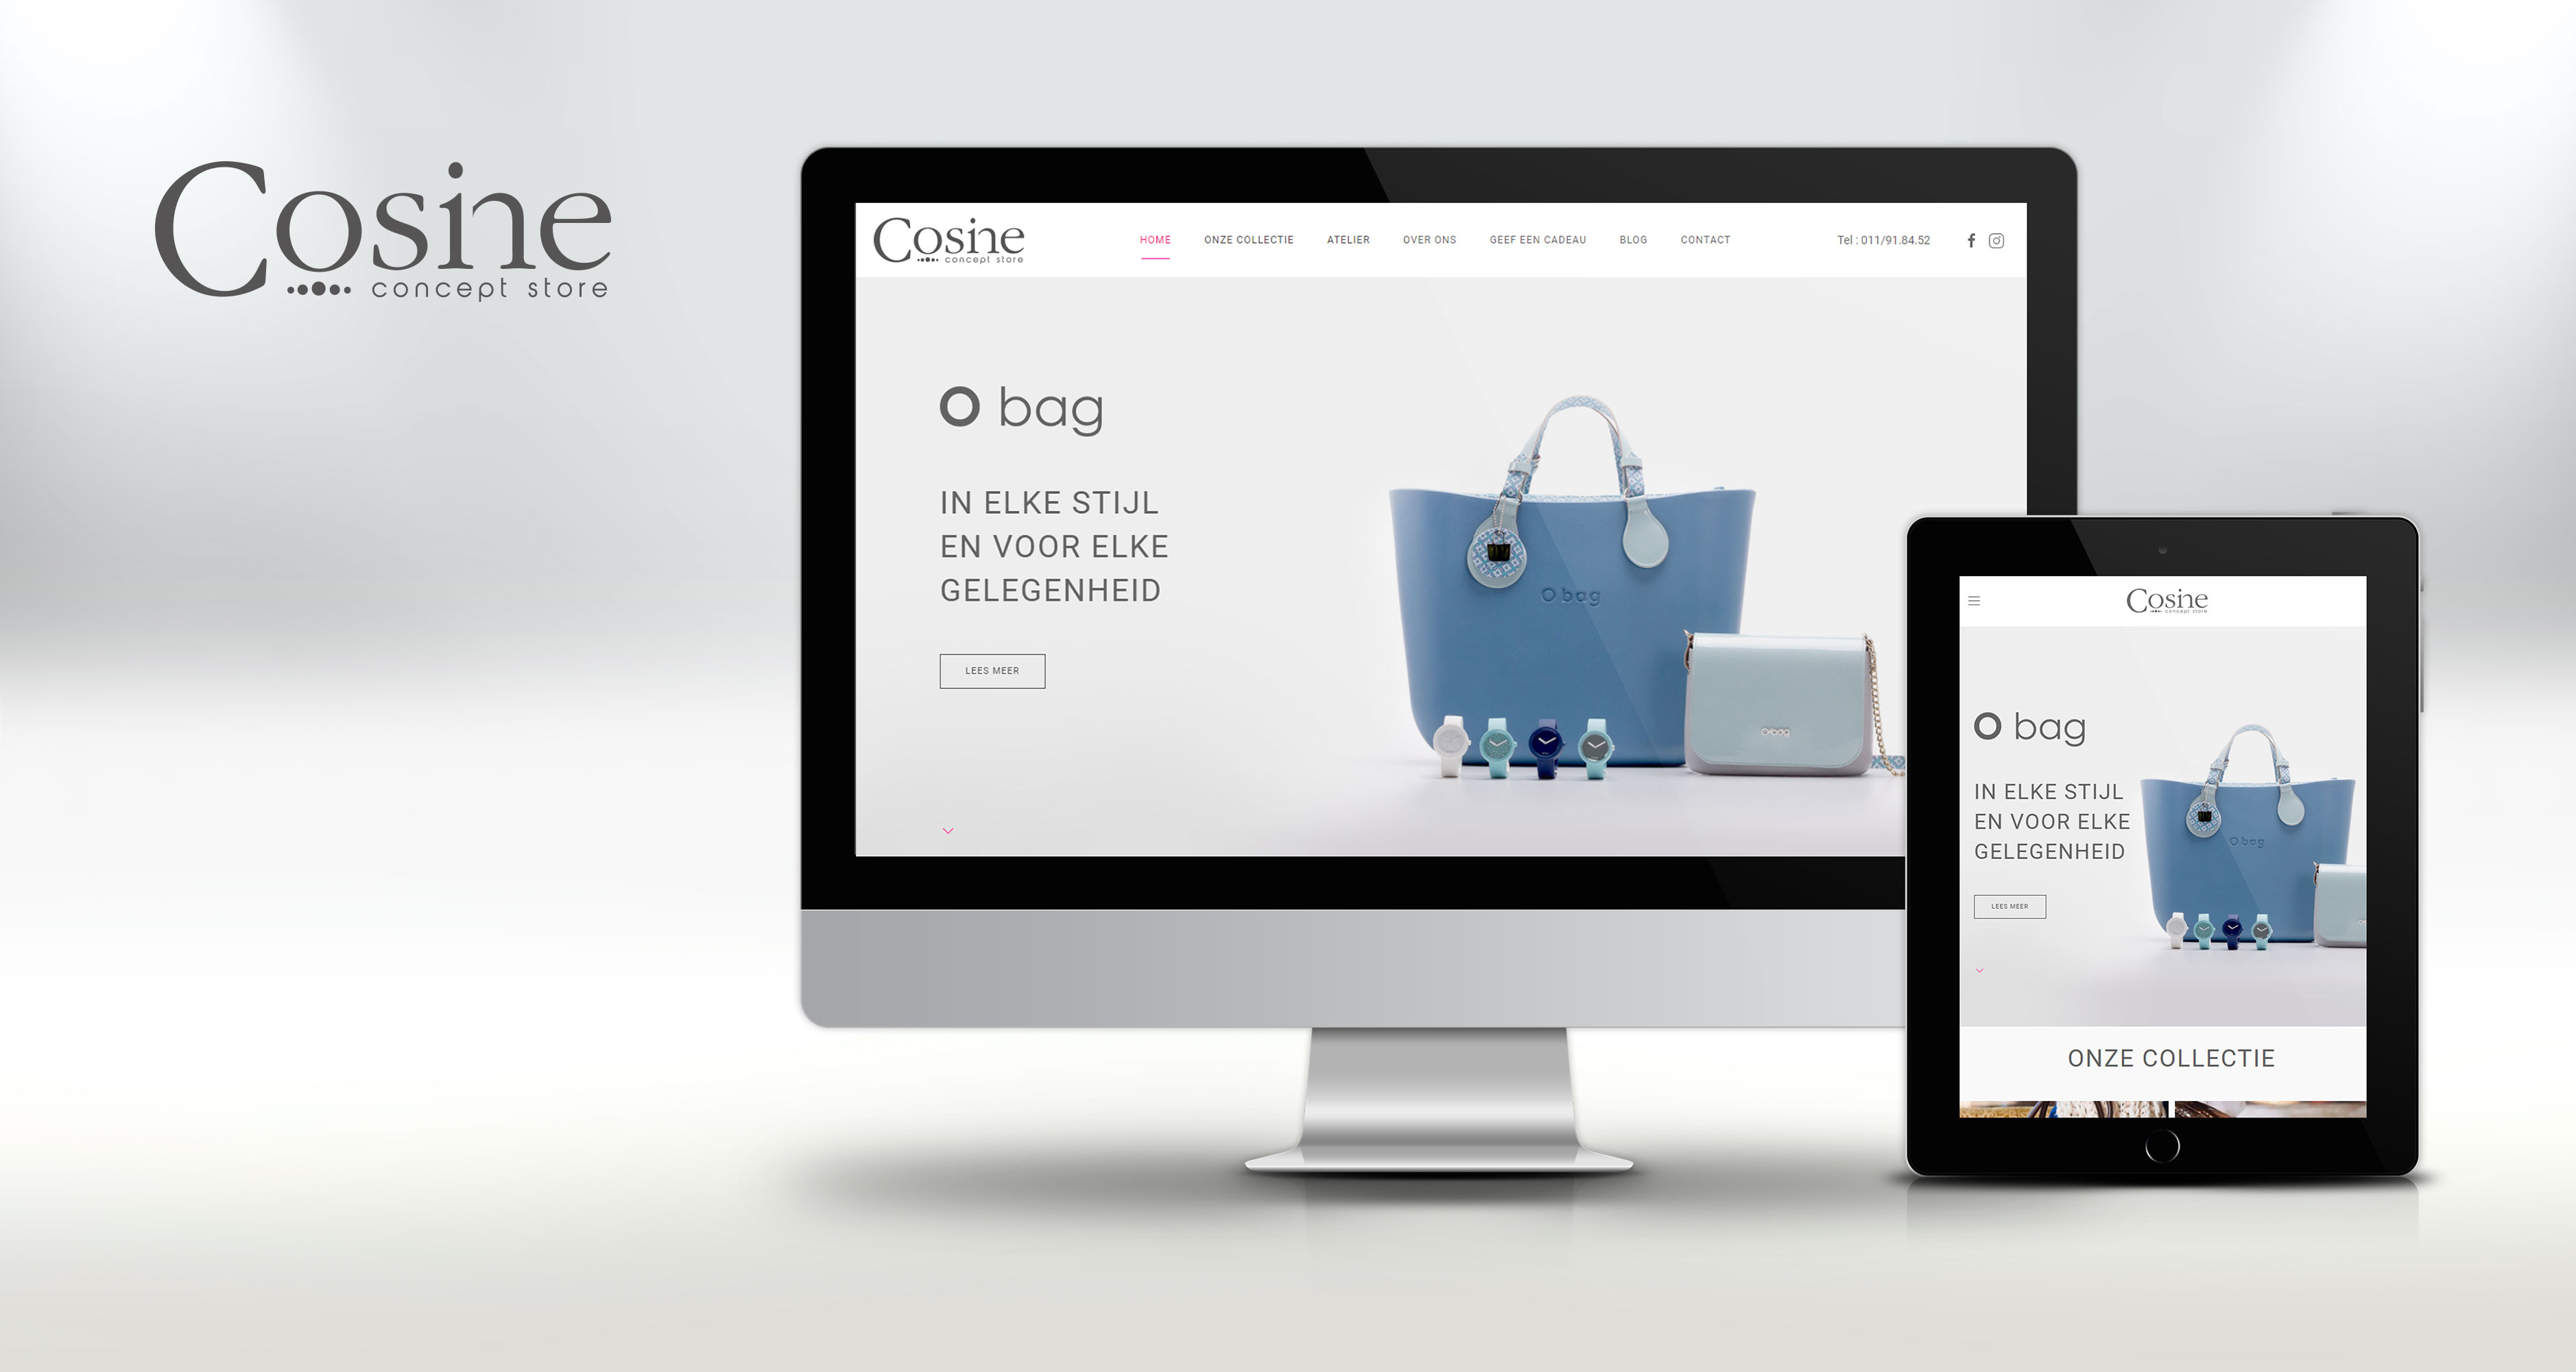 Cosine website design